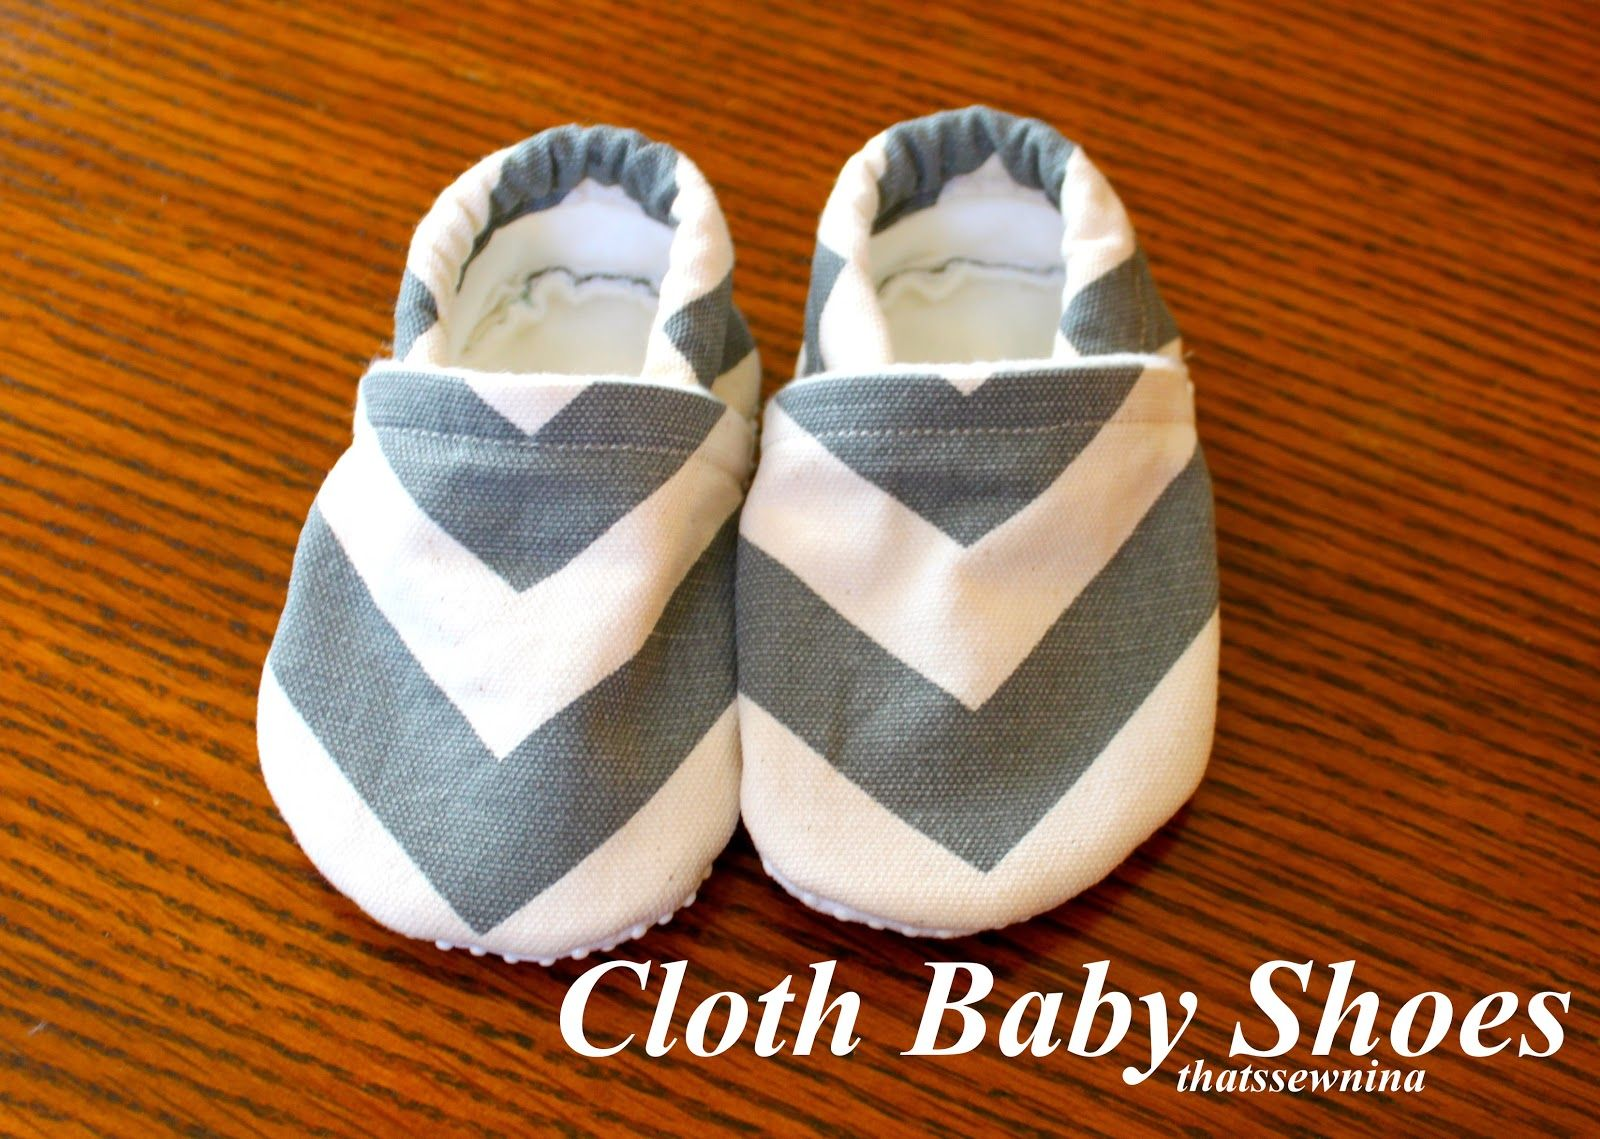 Cloth Baby Shoes Pattern | thatssewnina: My favorite DIY baby gift (part 3): Cloth Baby Shoes